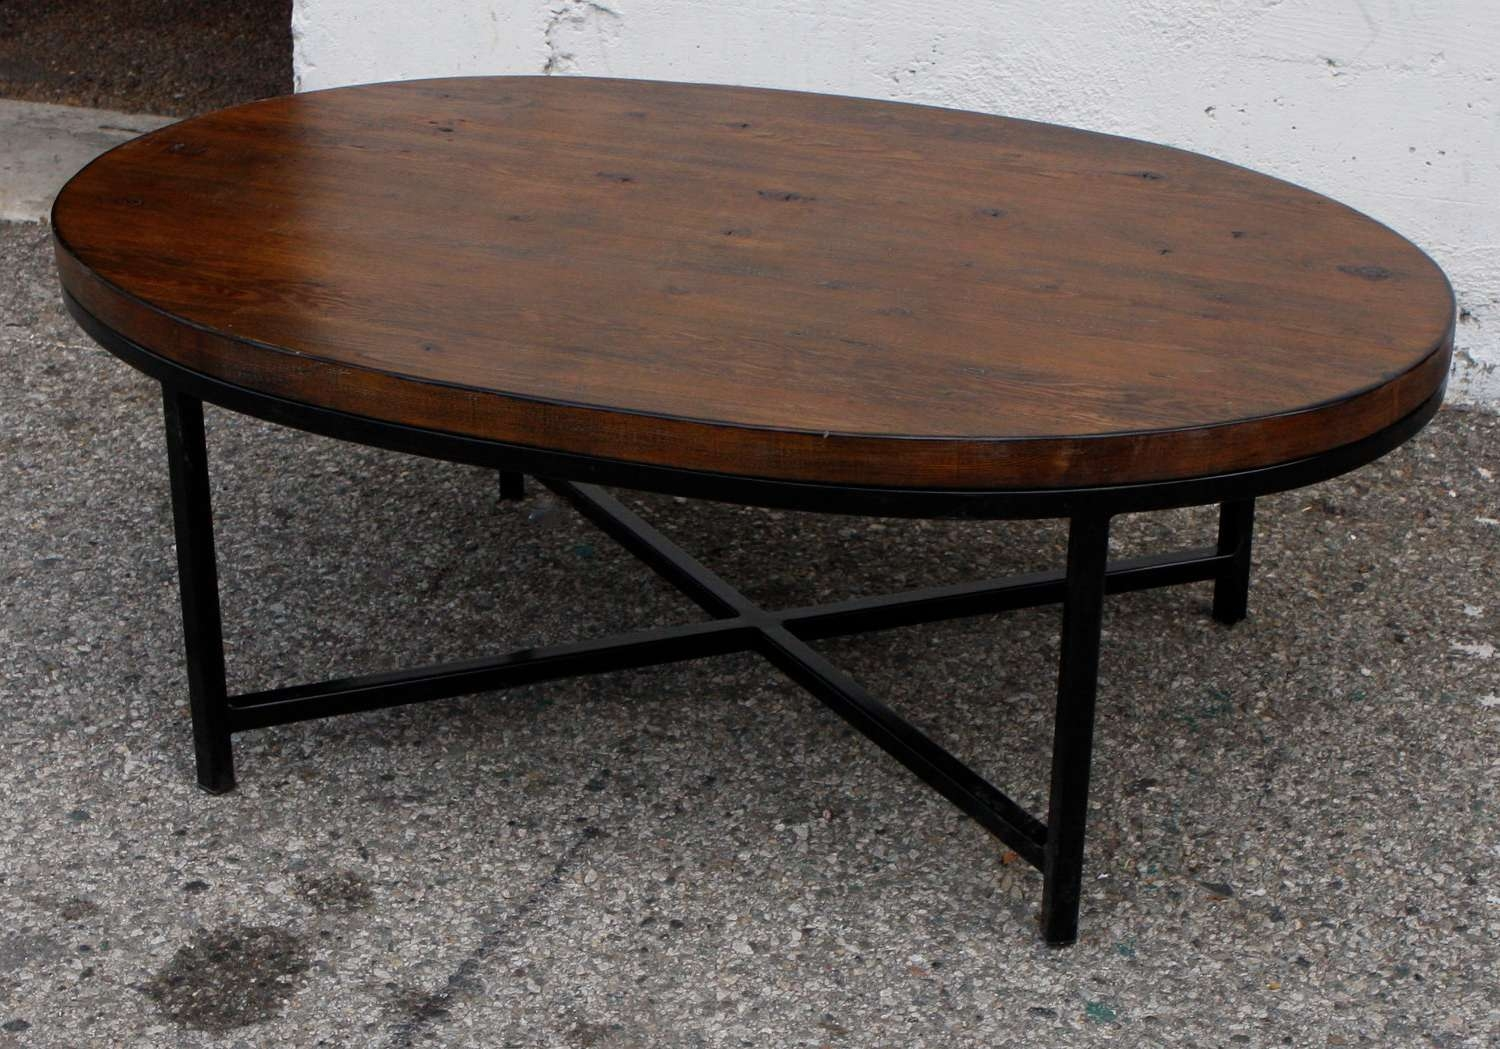 Trendy Black Oval Coffee Tables Pertaining To Coffee Tables : Mesmerizing Antique And Minimalist Oval Coffee (View 8 of 20)